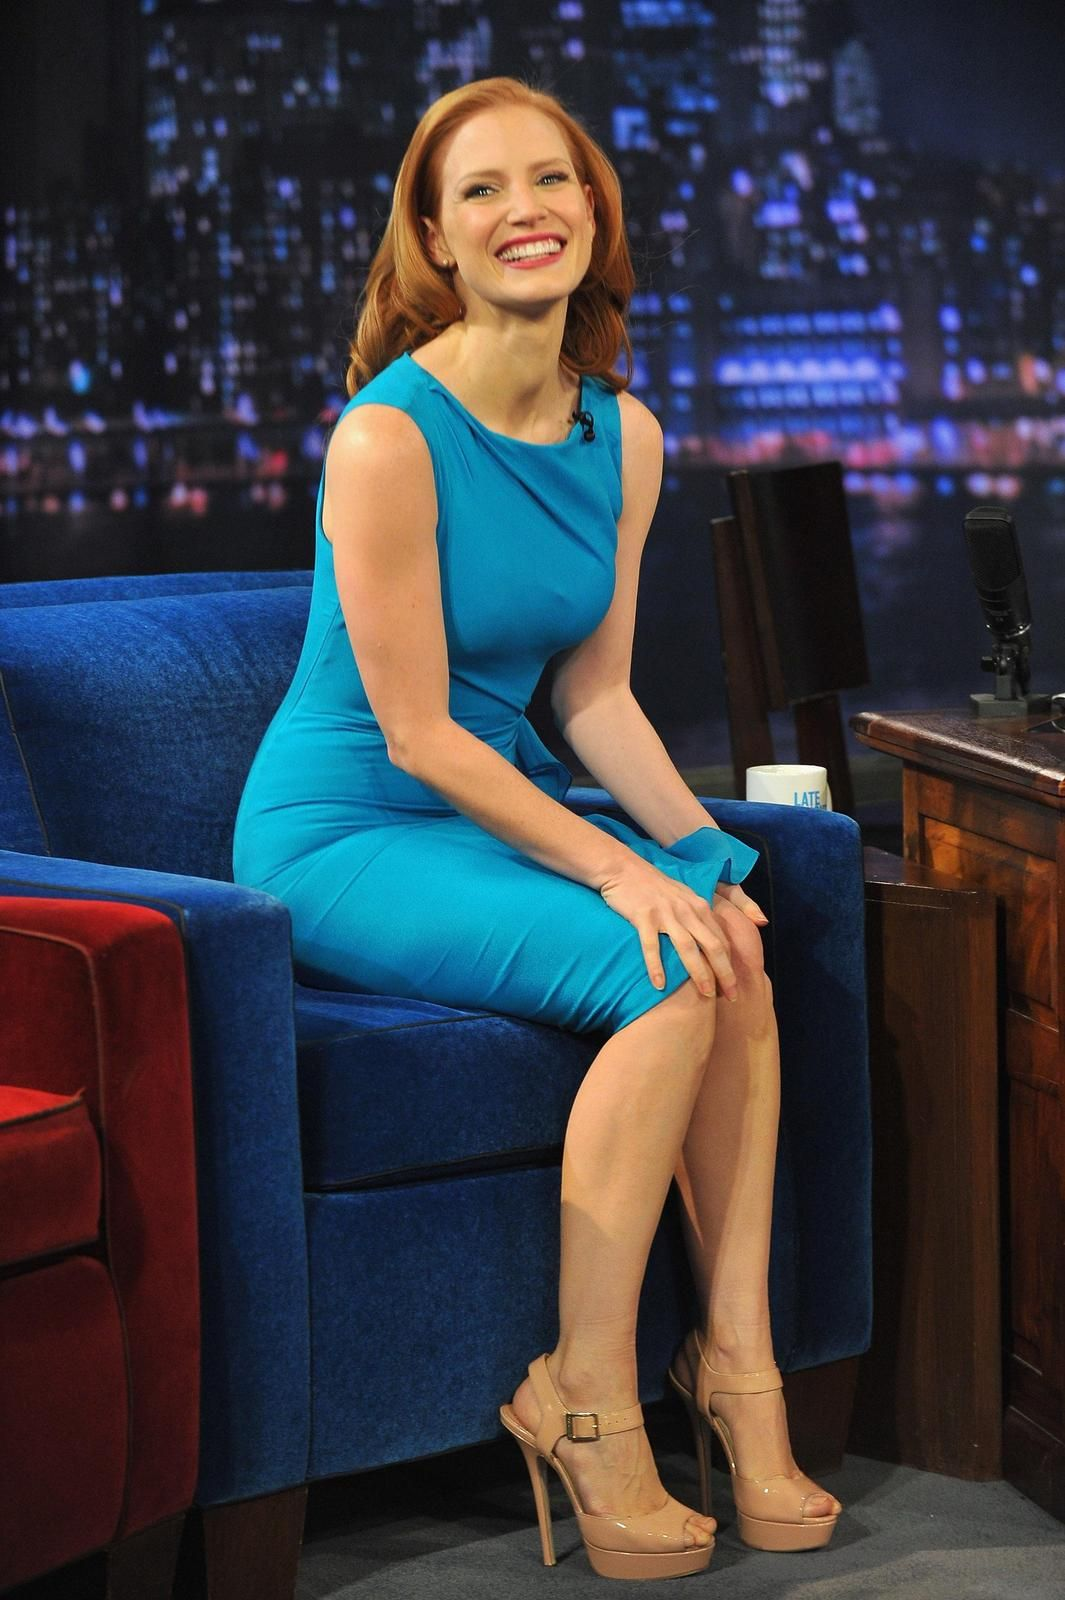 Jessica Chastain So Hot & Leggy